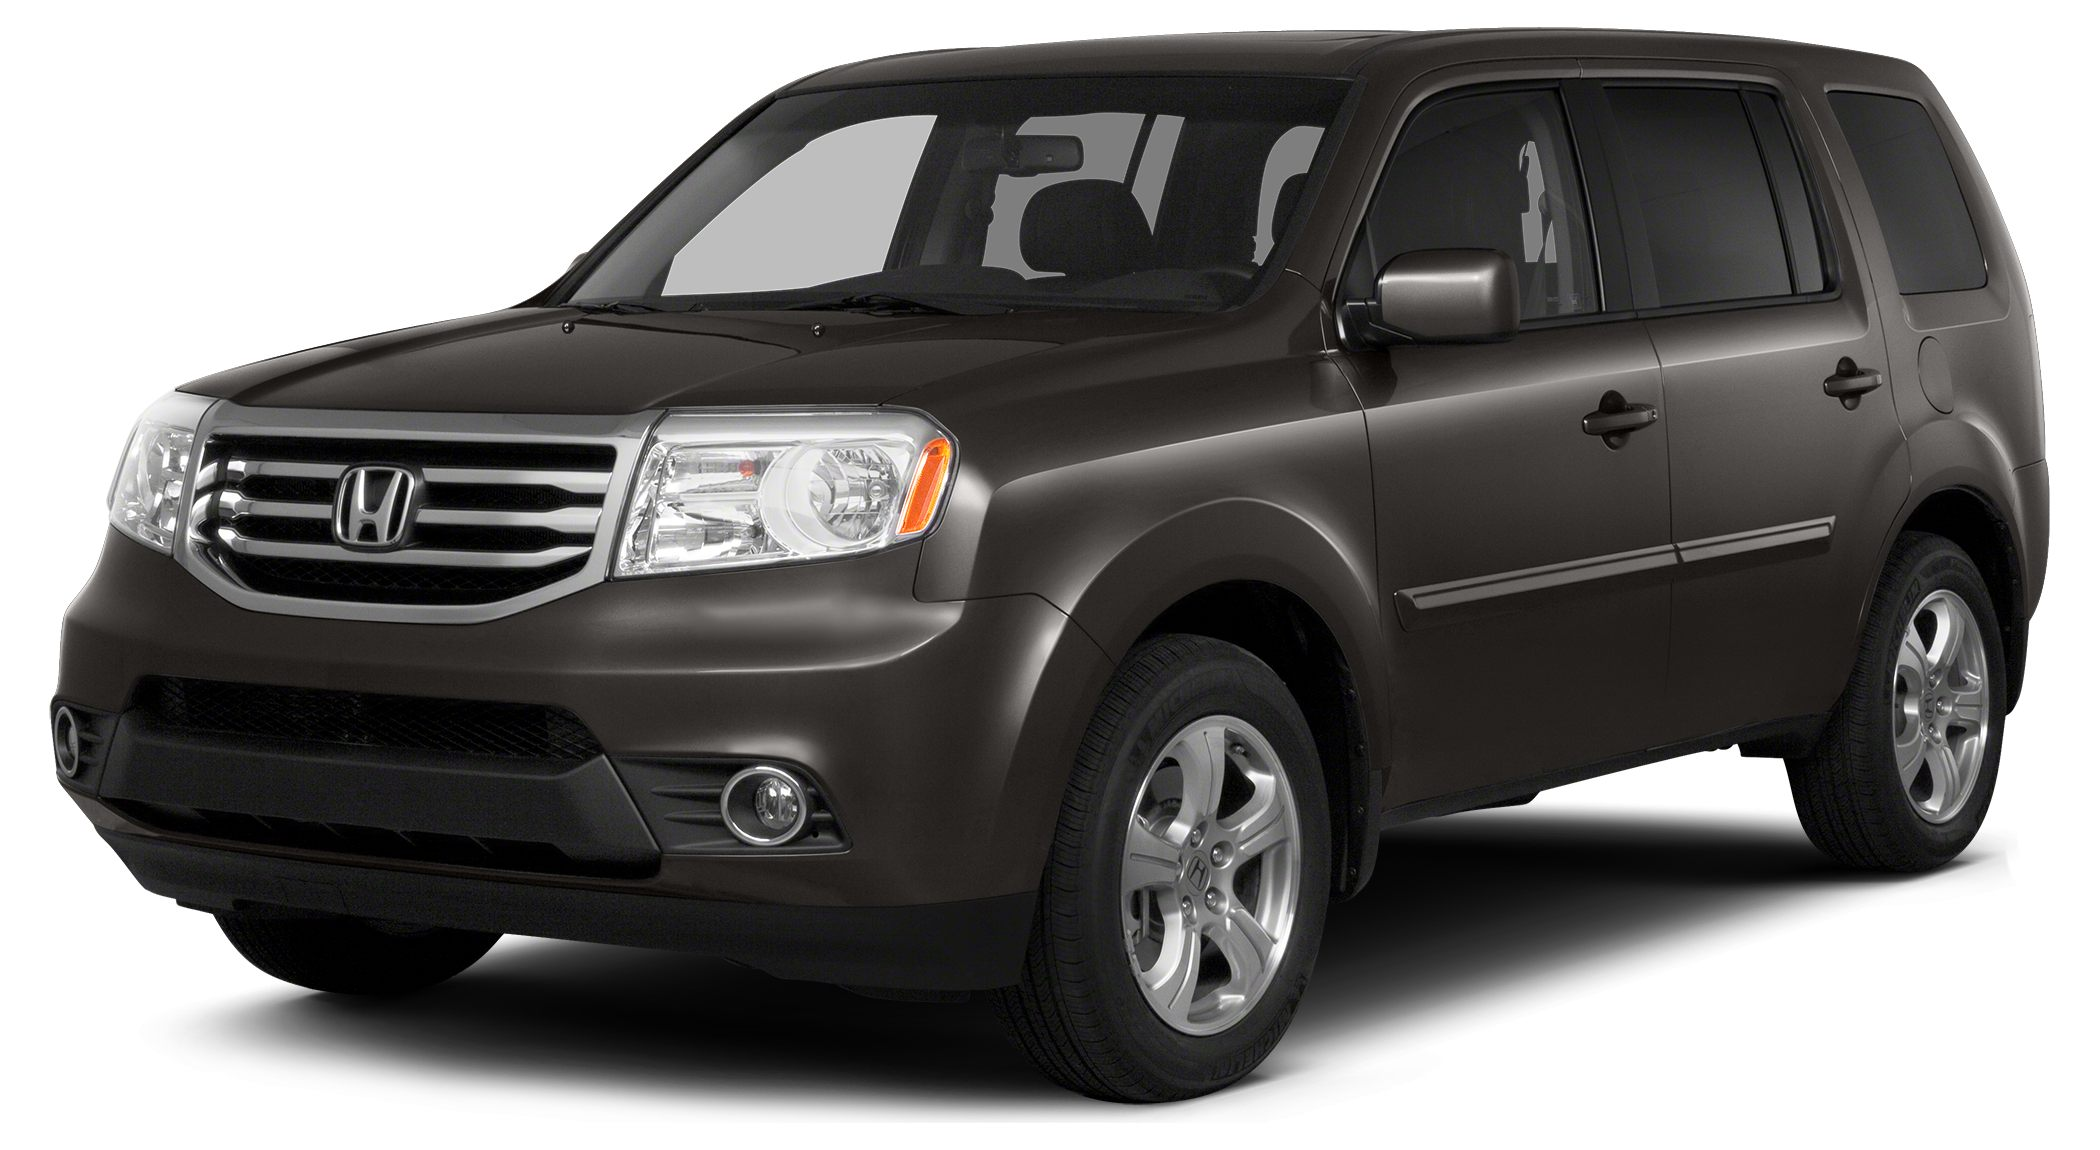 2013 Honda Pilot EX-L GREAT MILES 41115 EPA 24 MPG Hwy17 MPG City PRICED TO MOVE 1600 below